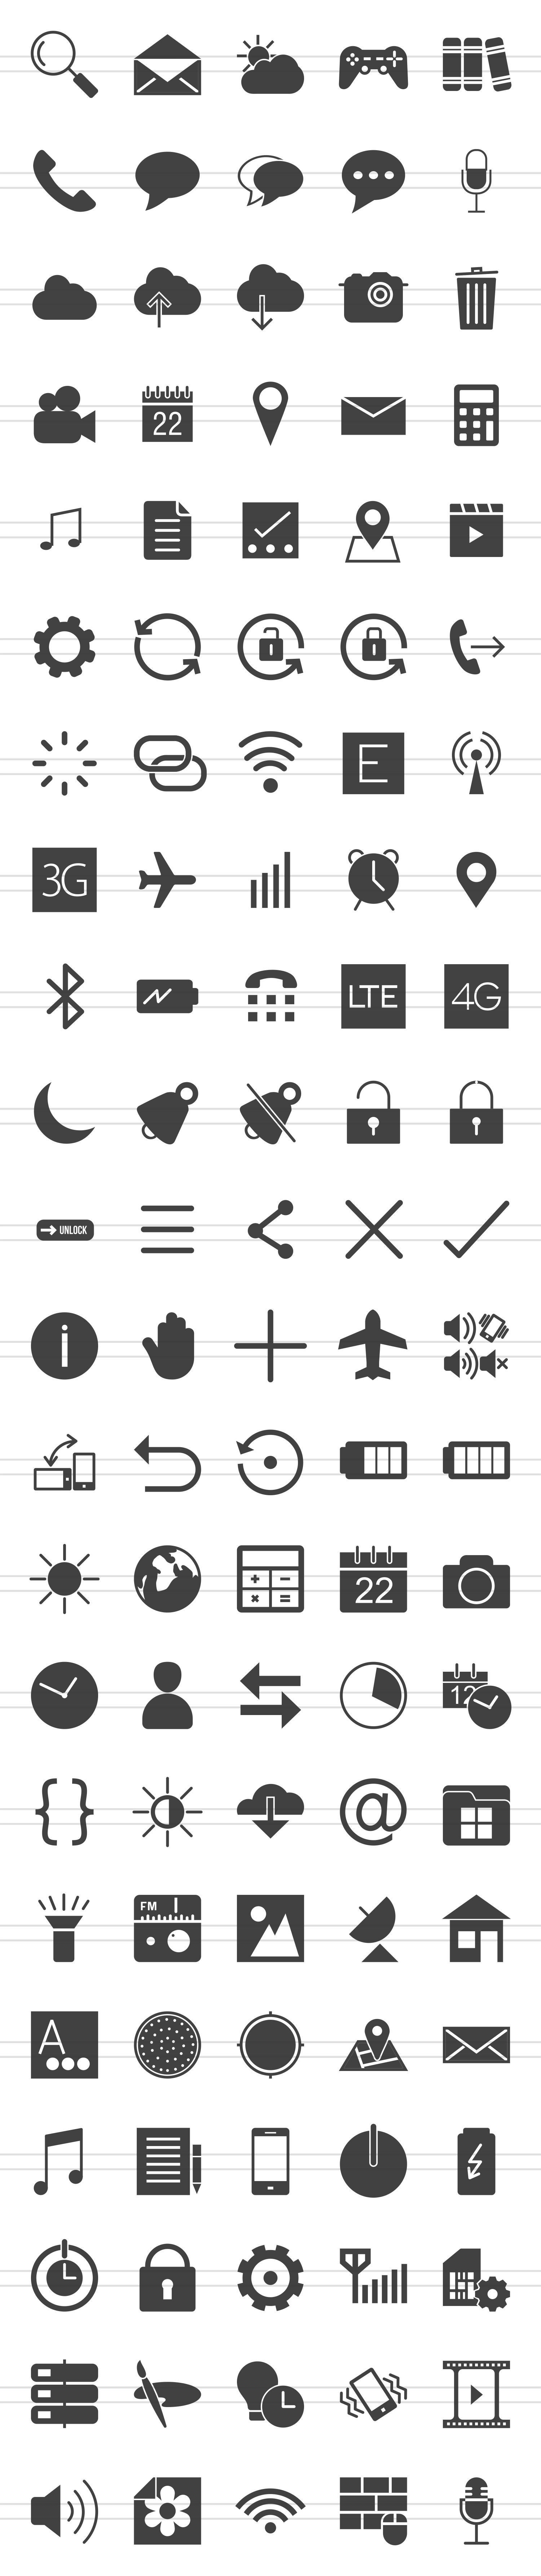 50 Smartphone Glyph Icons example image 2